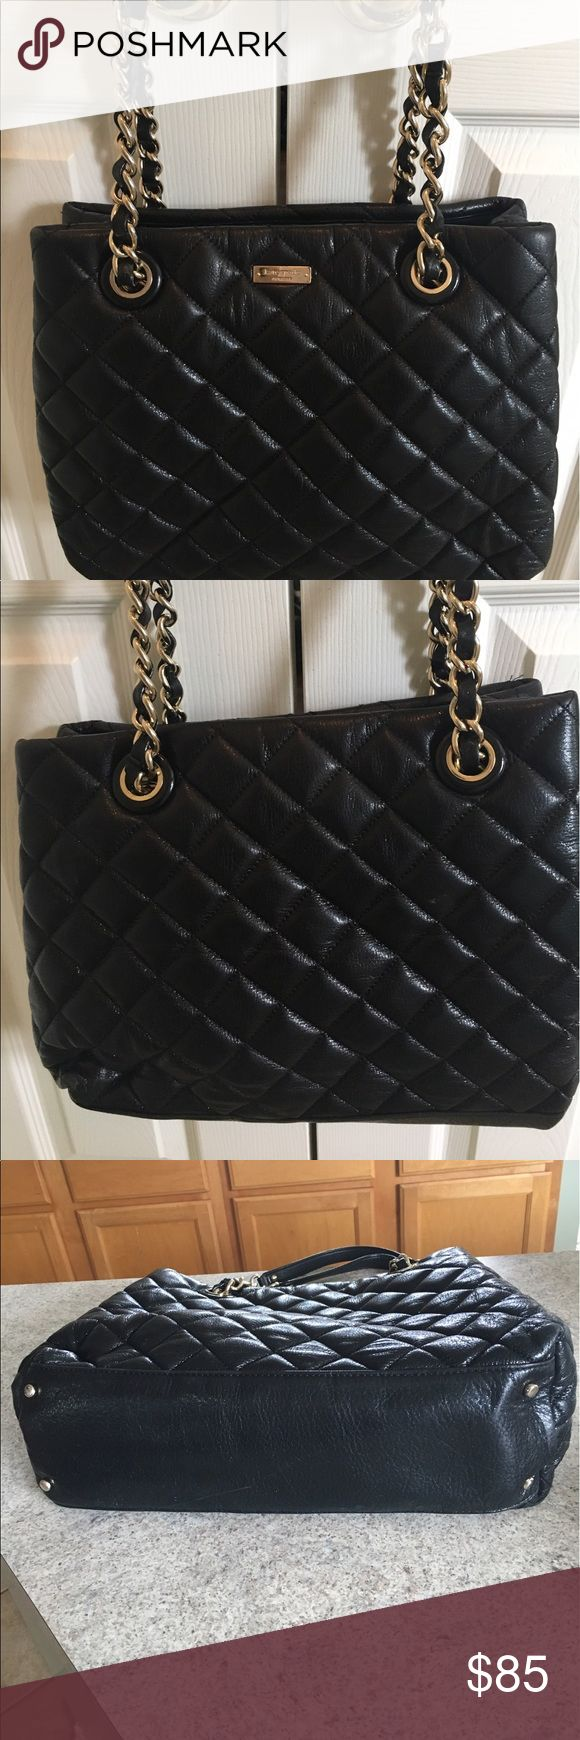 Kate Spade MaryAnn Gold Coast purse Black Kate Spade purse, great condition. Light stains on the inside of the purse from normal use, see last photo for detail. Outside has no damage. kate spade Bags Shoulder Bags